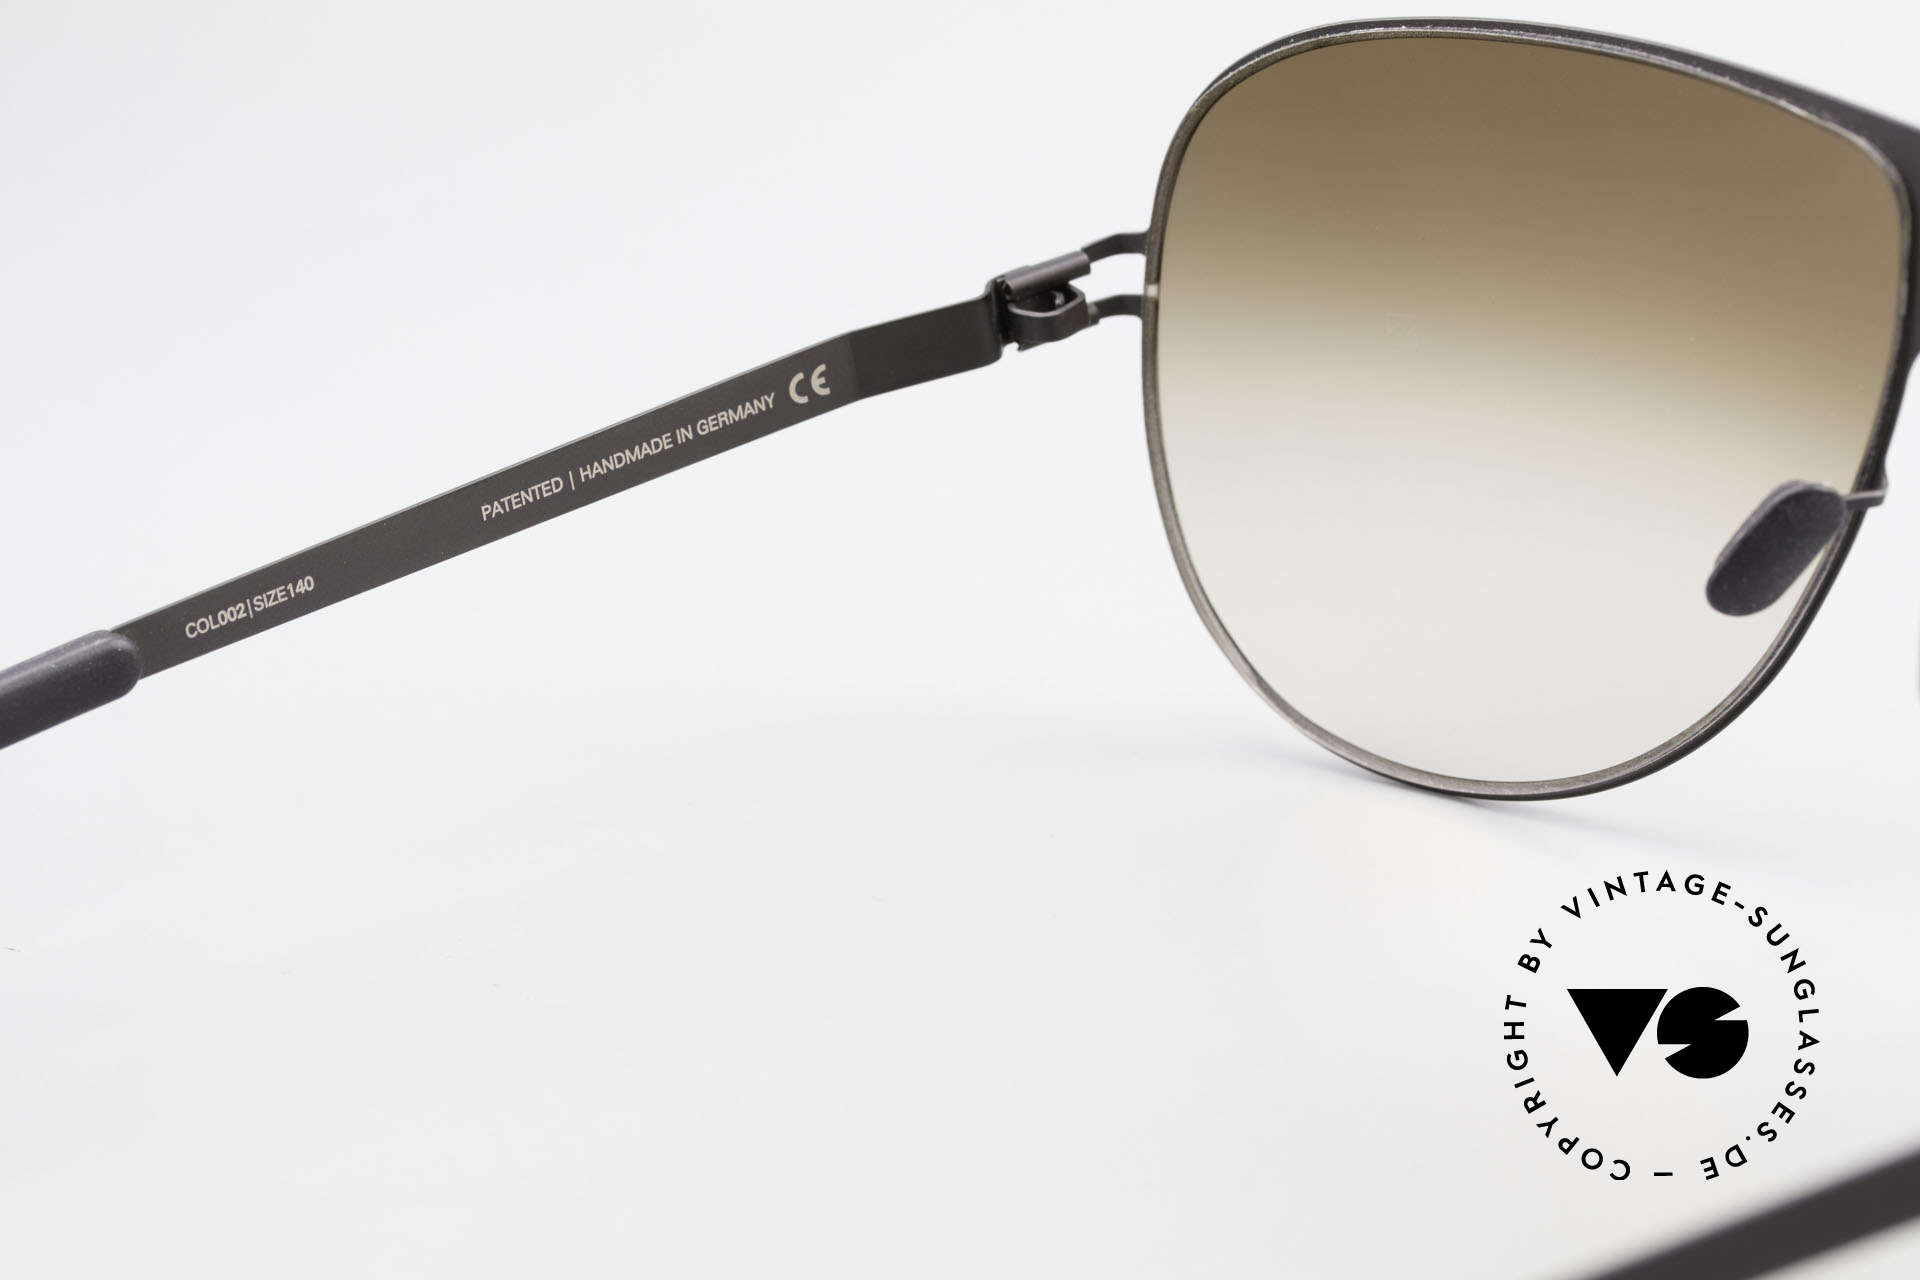 Mykita Elliot Mykita Tom Cruise Sunglasses, worn by Tom Cruise (rare & in high demand, meanwhile), Made for Men